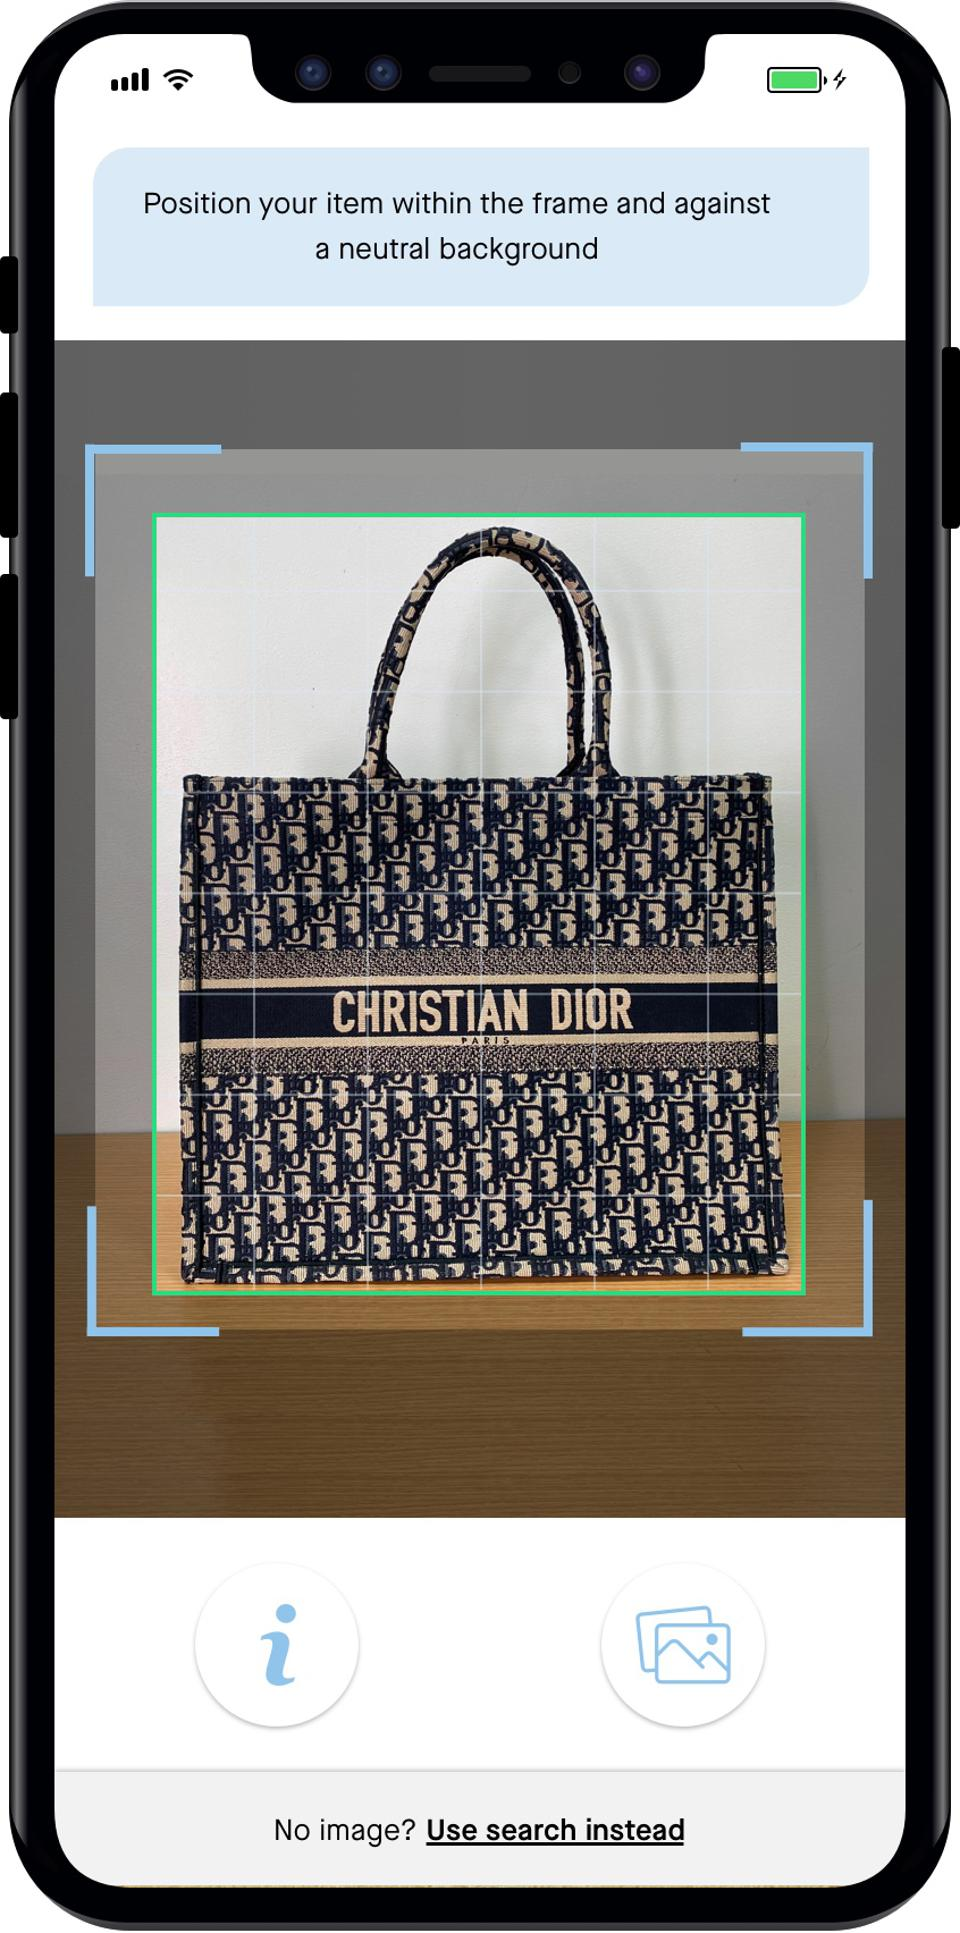 Clair AI identifies this image as Dior's Book Tote Oblique.